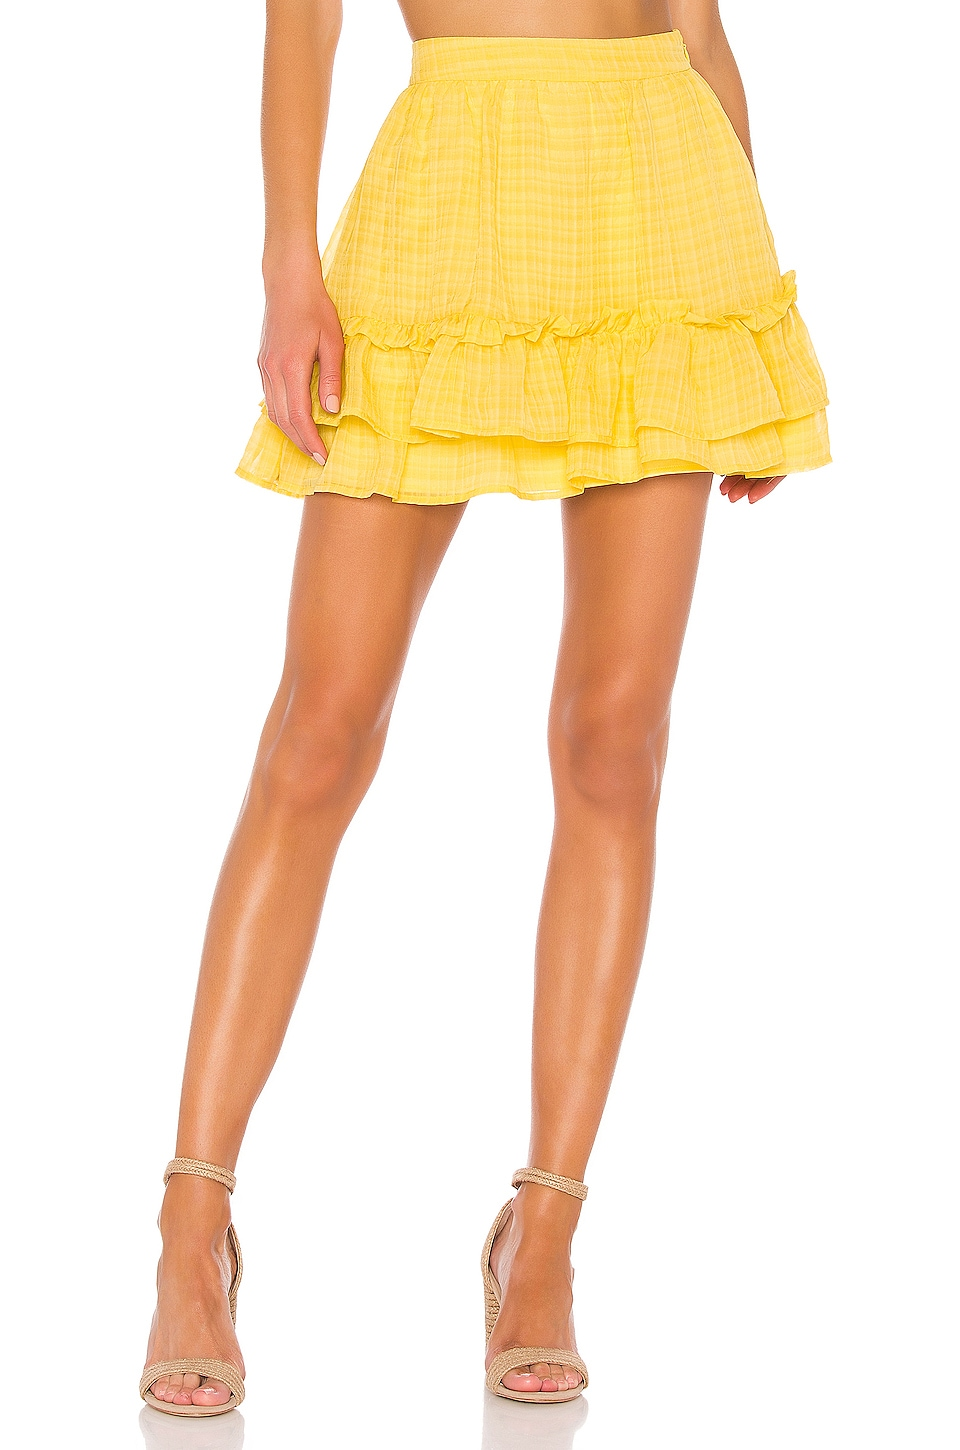 House of Harlow 1960 X REVOLVE Soledad Mini Skirt in Yellow